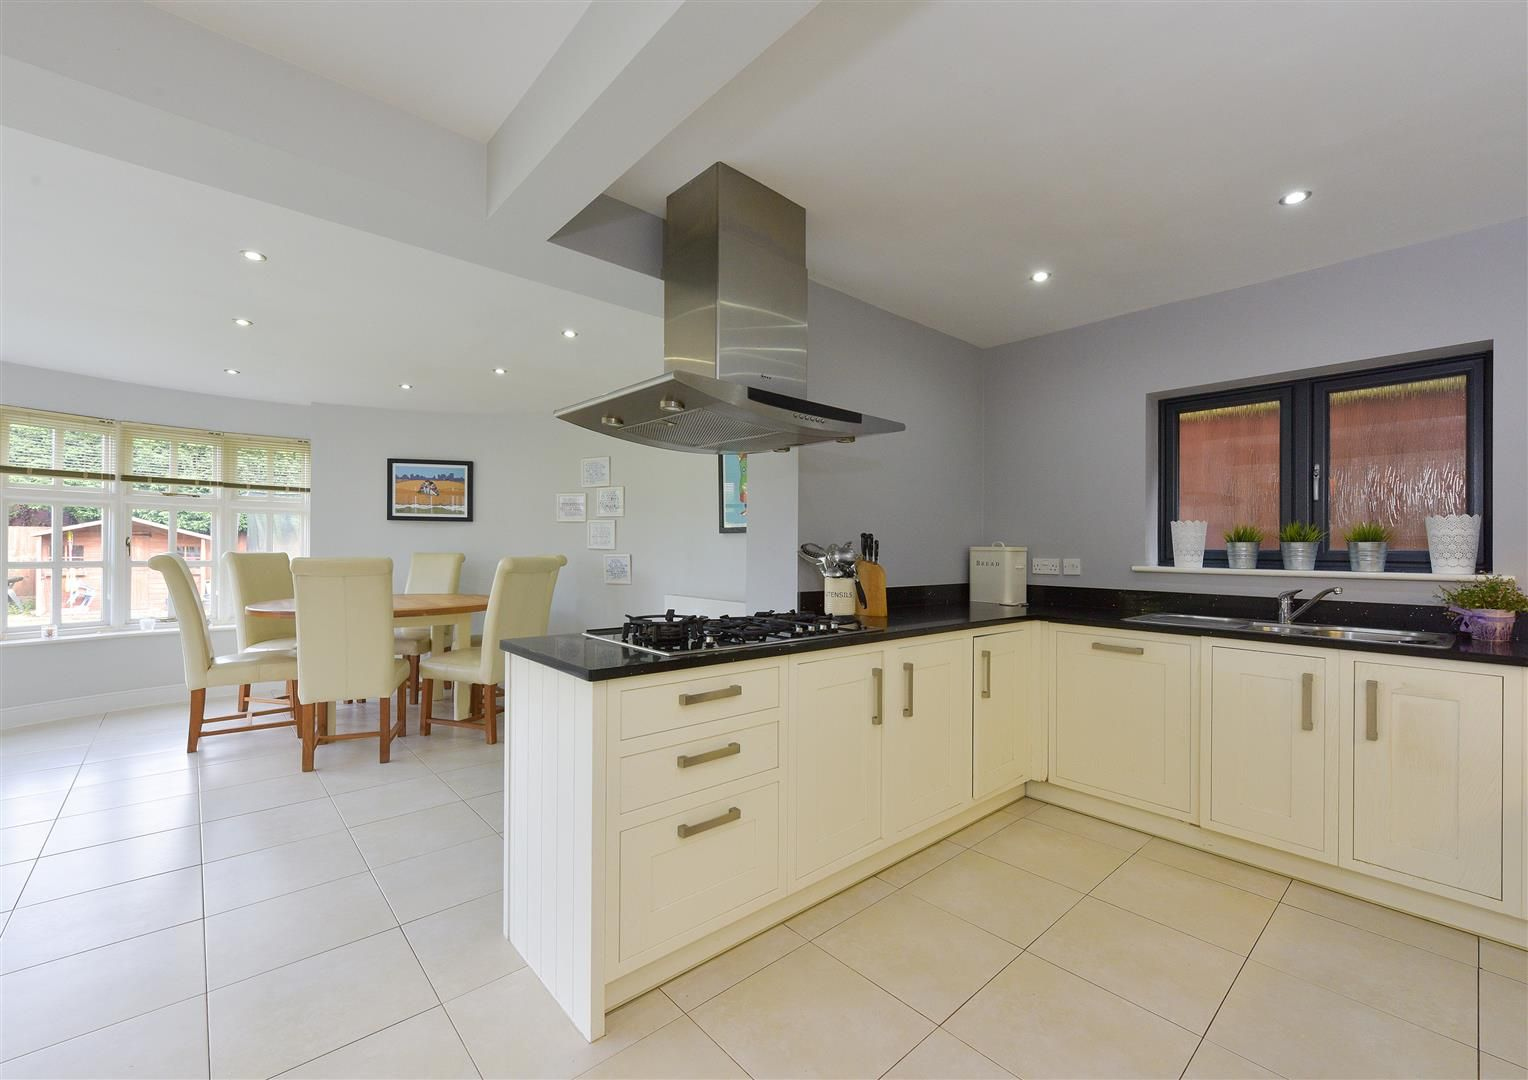 5 bed house for sale in Hagley  - Property Image 3